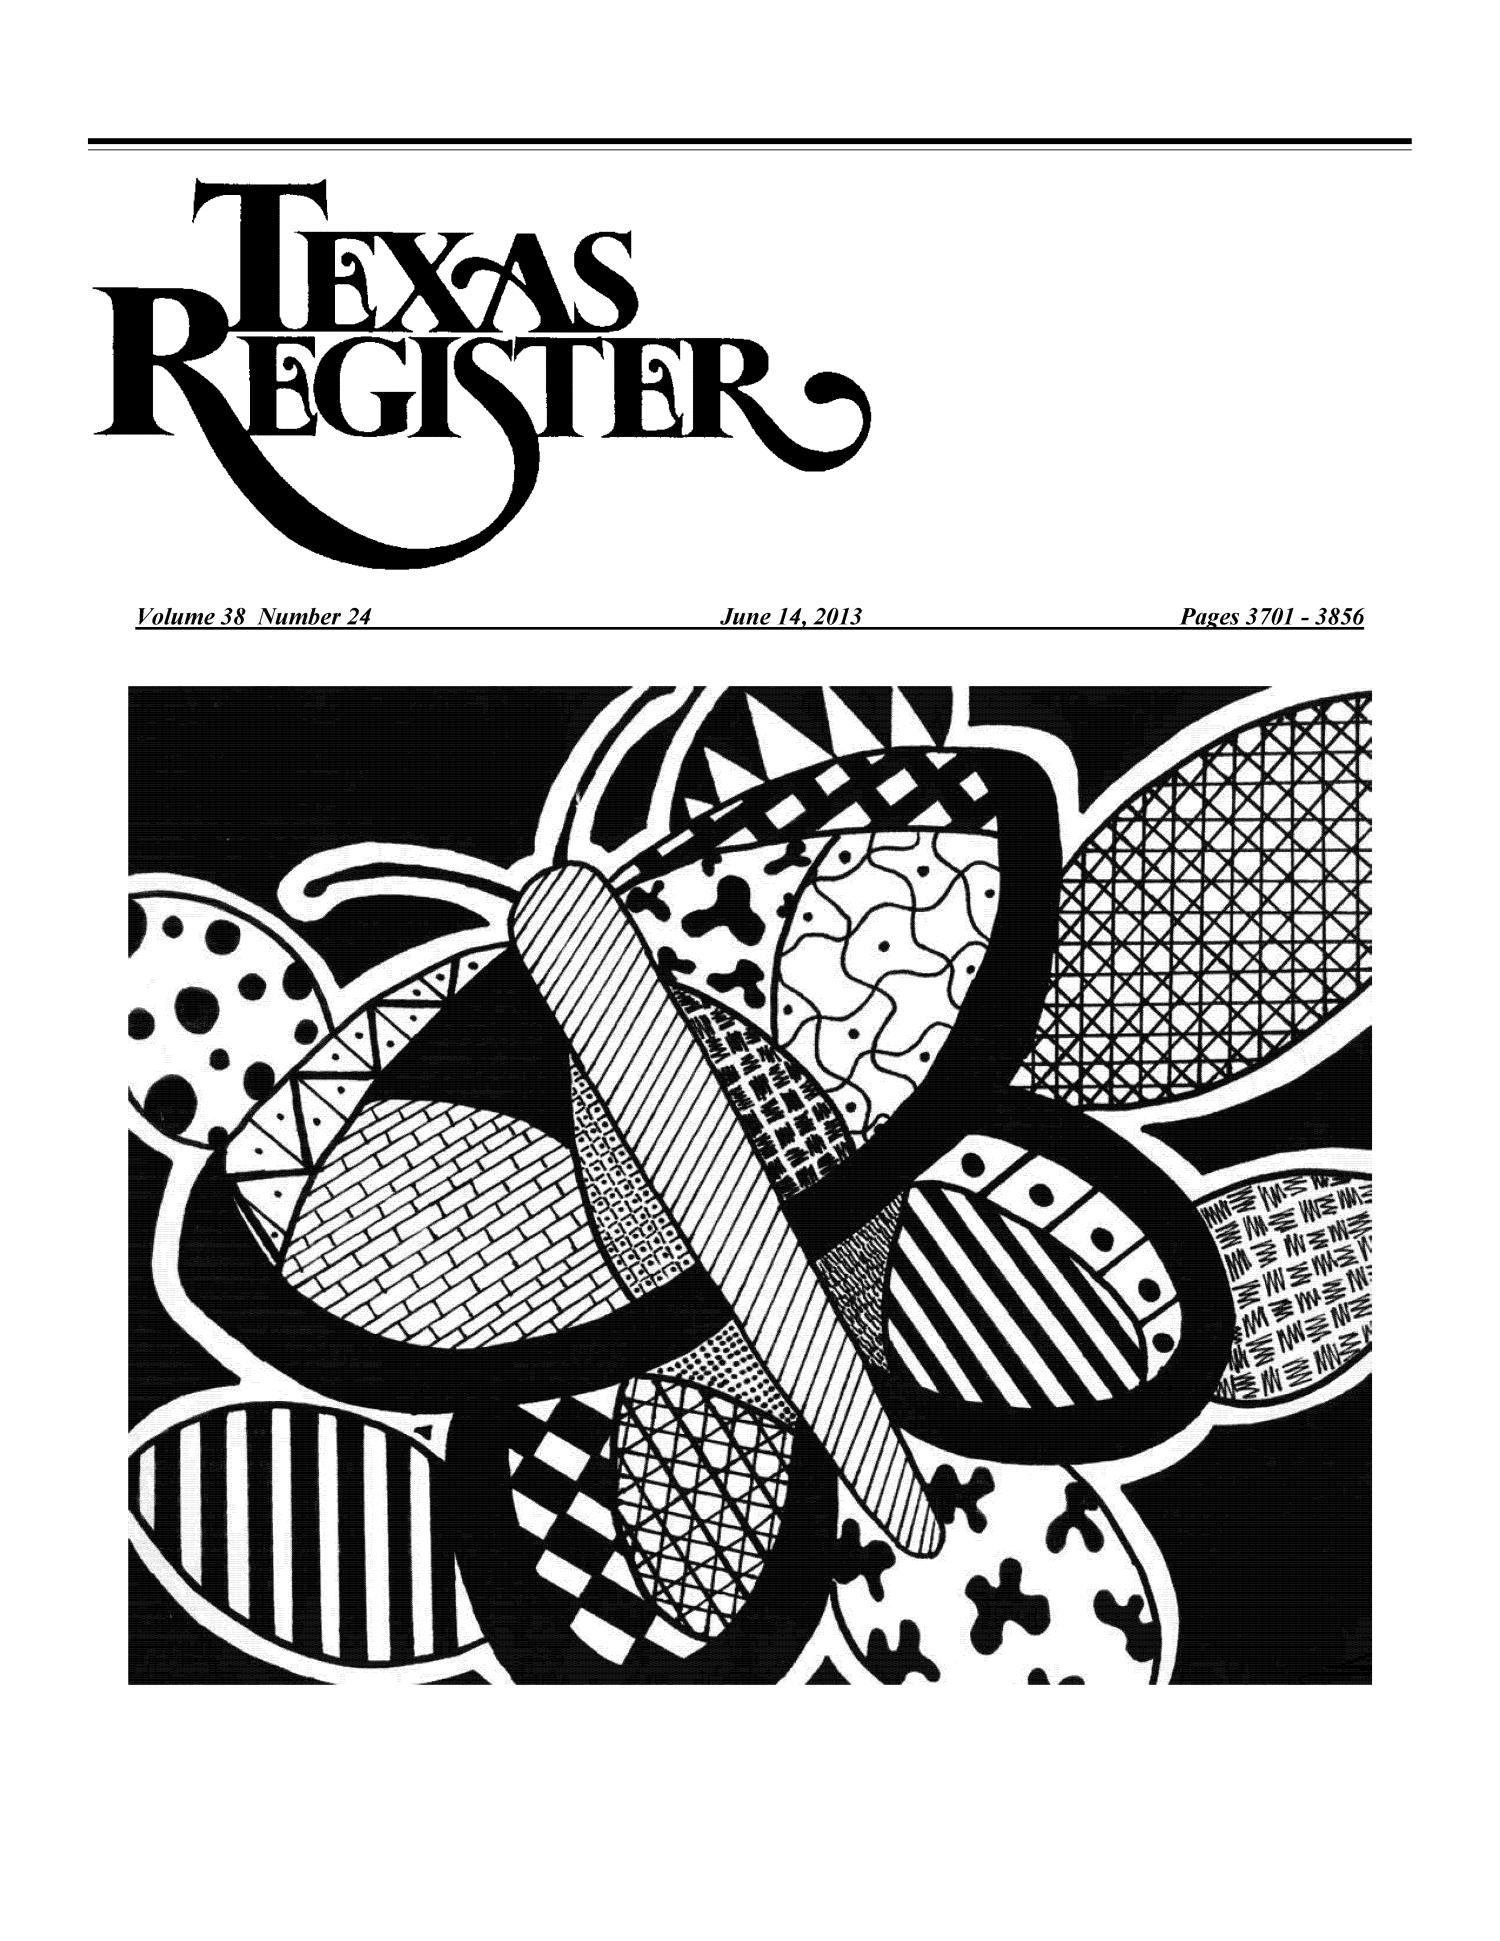 Texas Register, Volume 38, Number 24, Pages 3701-3856, June 14, 2013                                                                                                      Title Page